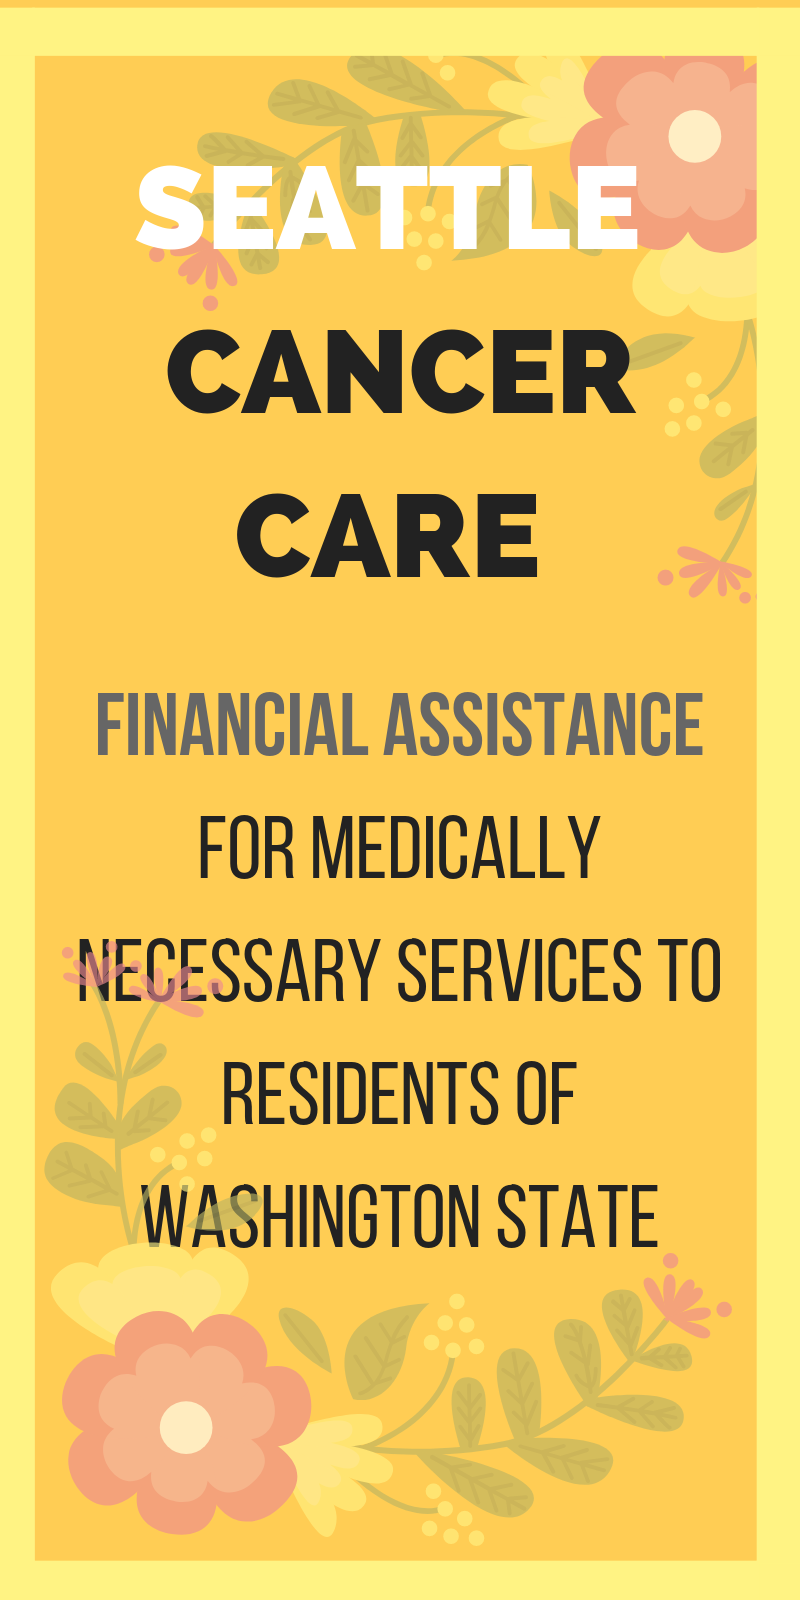 financial assistance for medically necessary services to